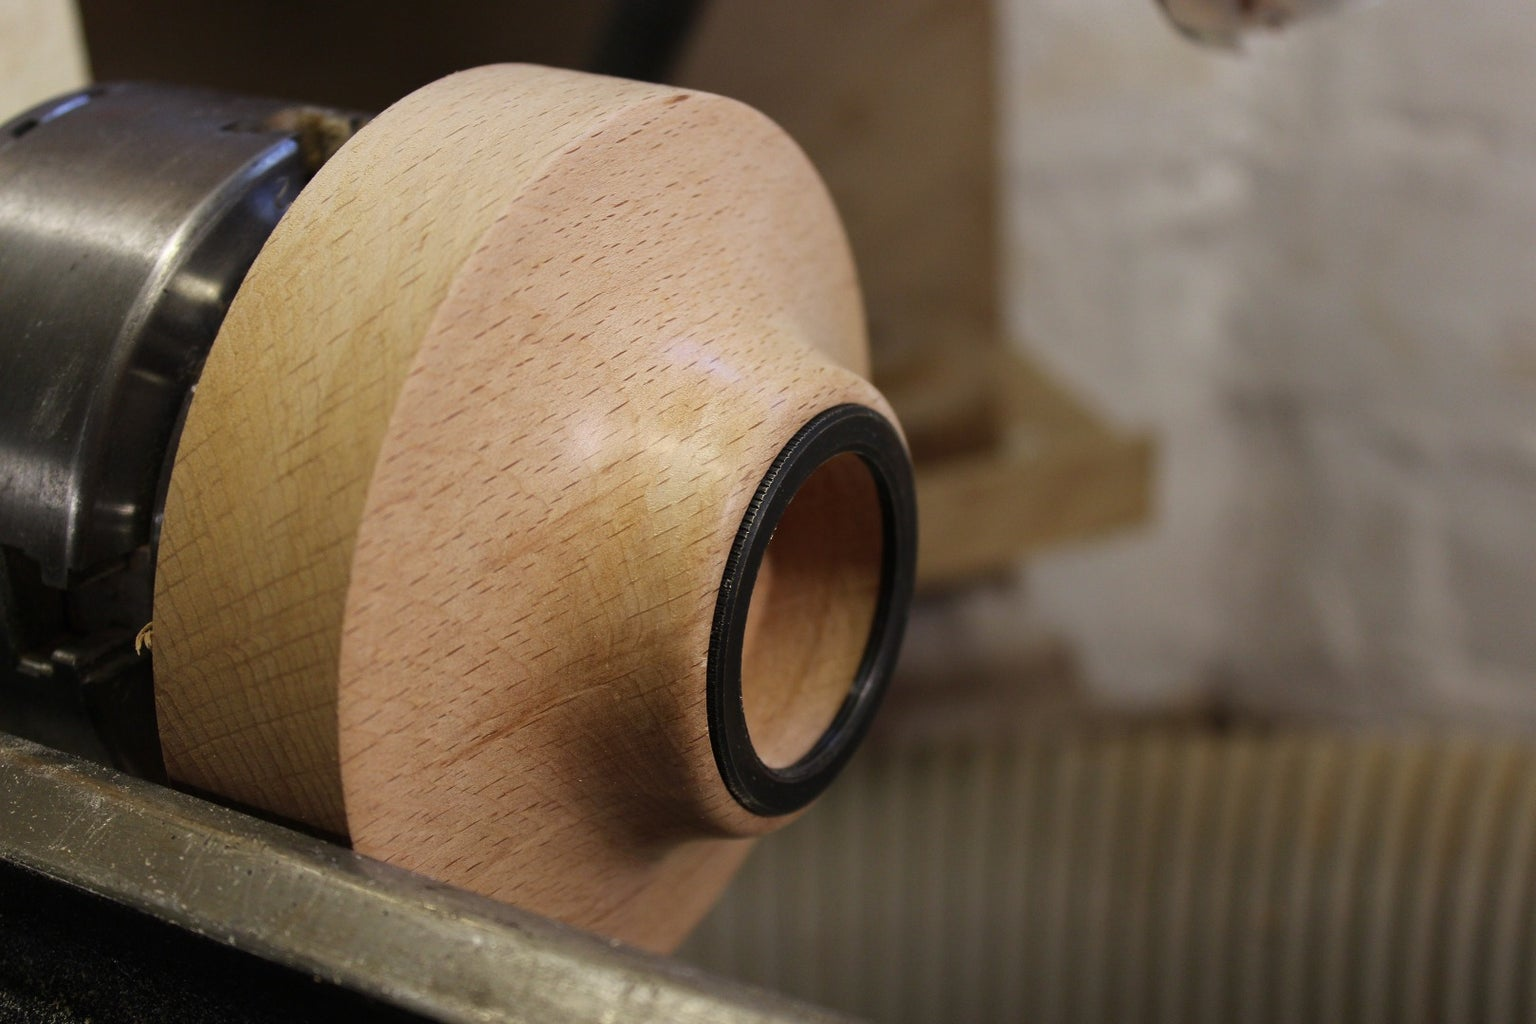 Cut That Sweet Sweet Curve Also Hollow for the Lamp Fitting